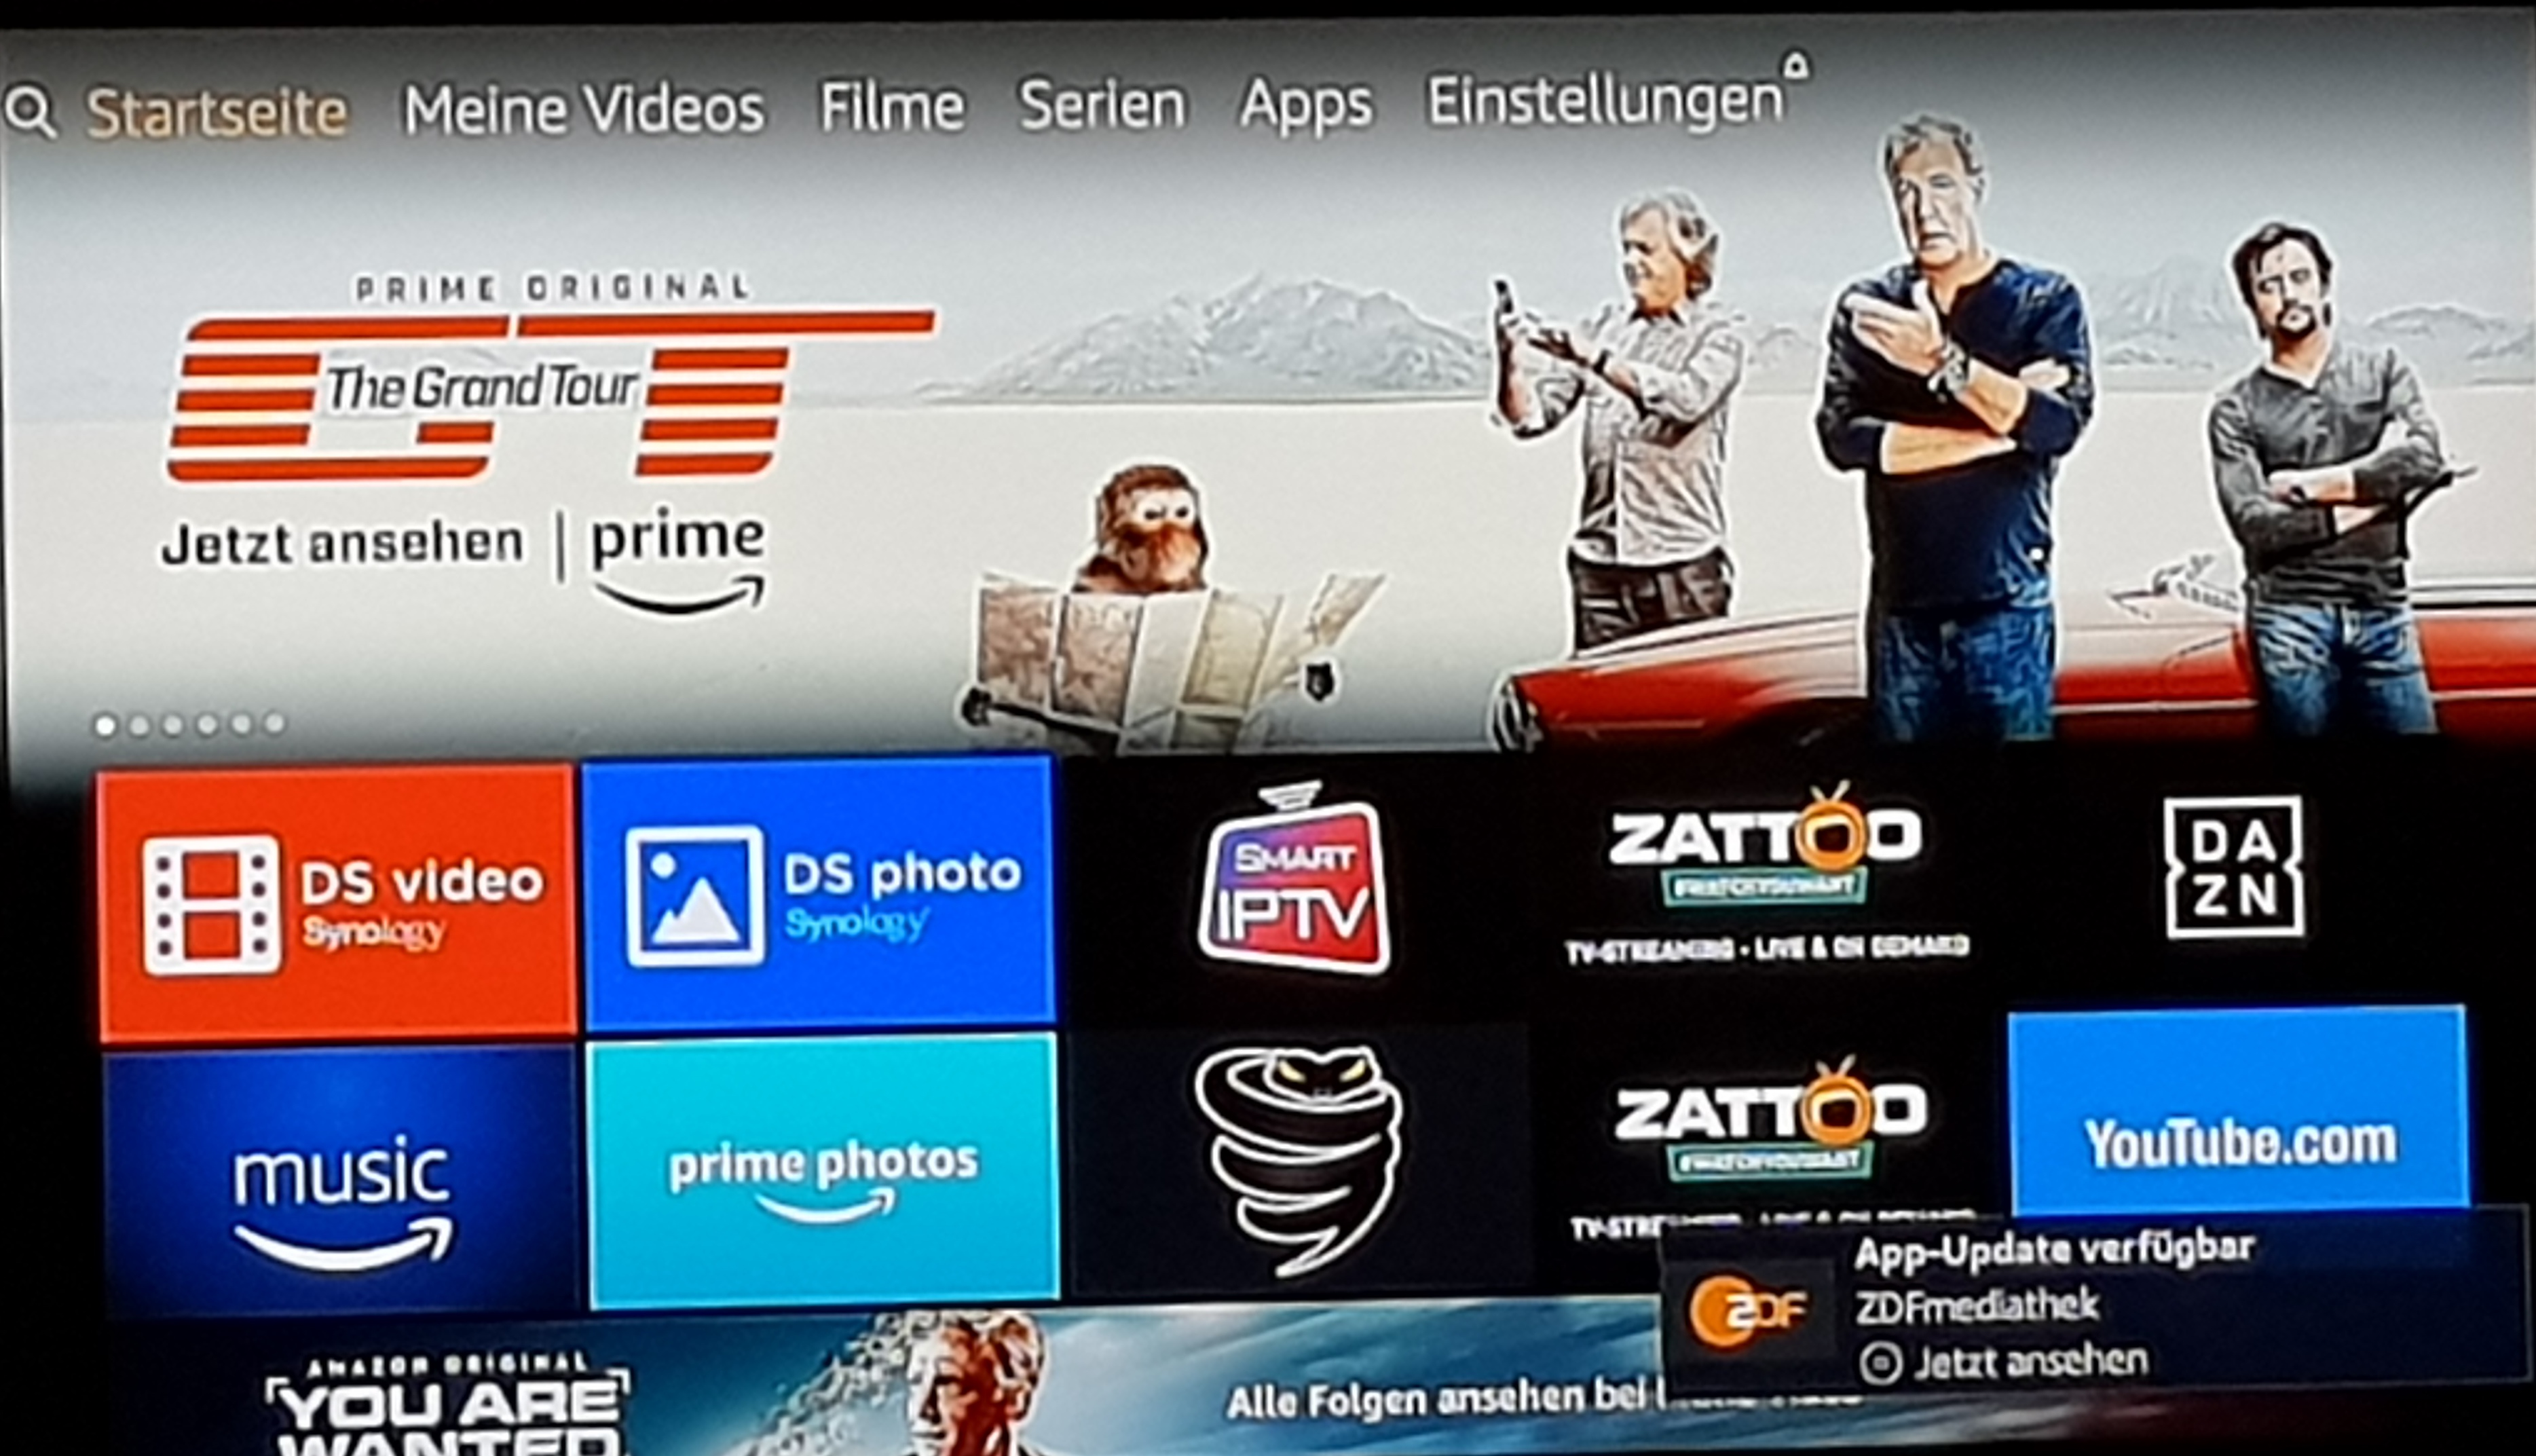 DS Video und DS Photo auf dem Fire TV